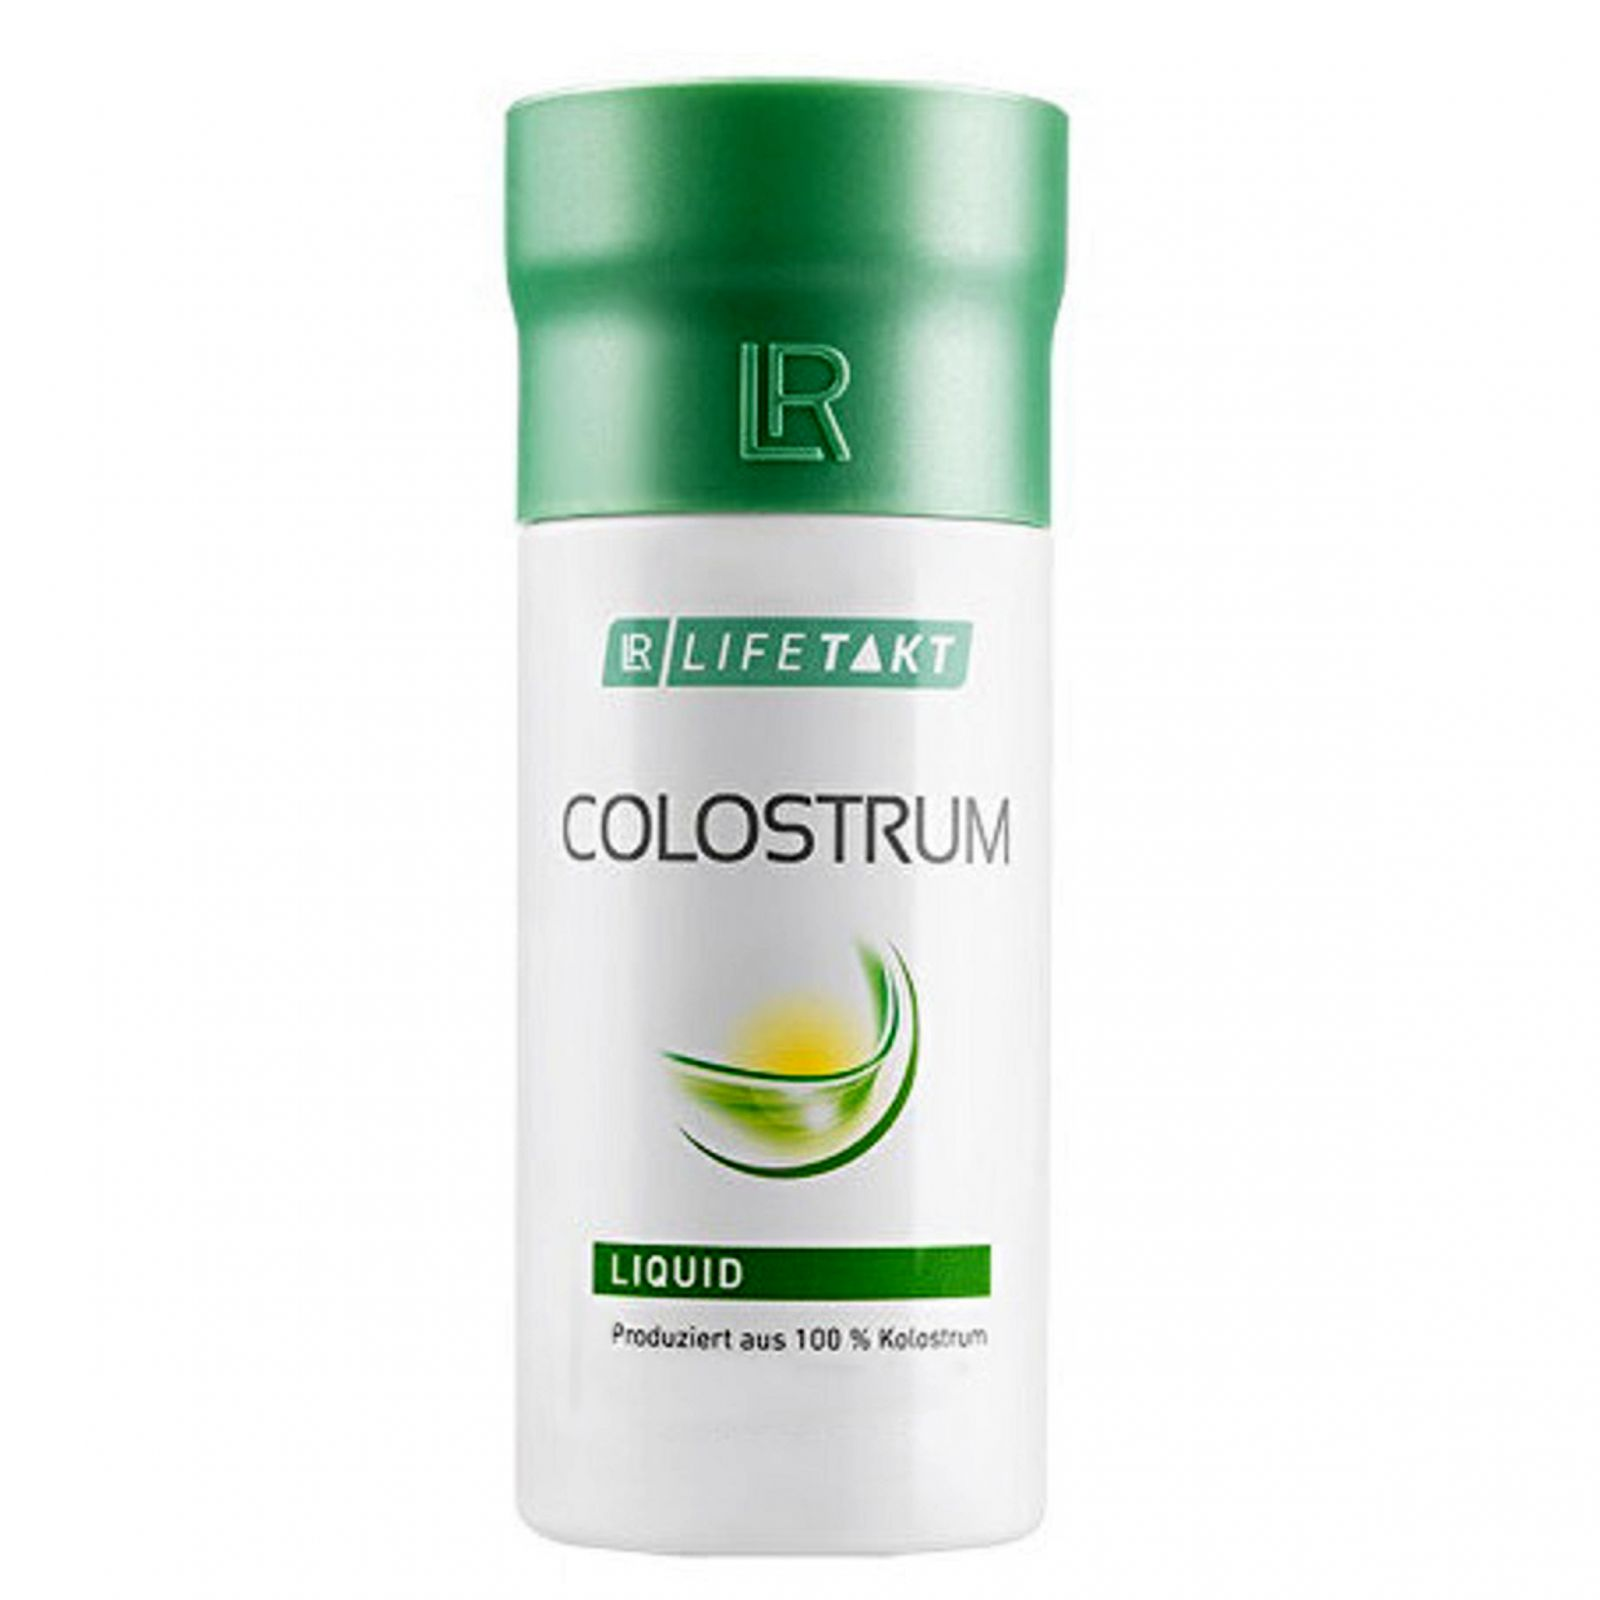 LR LIFETAKT Colostrum Liquid